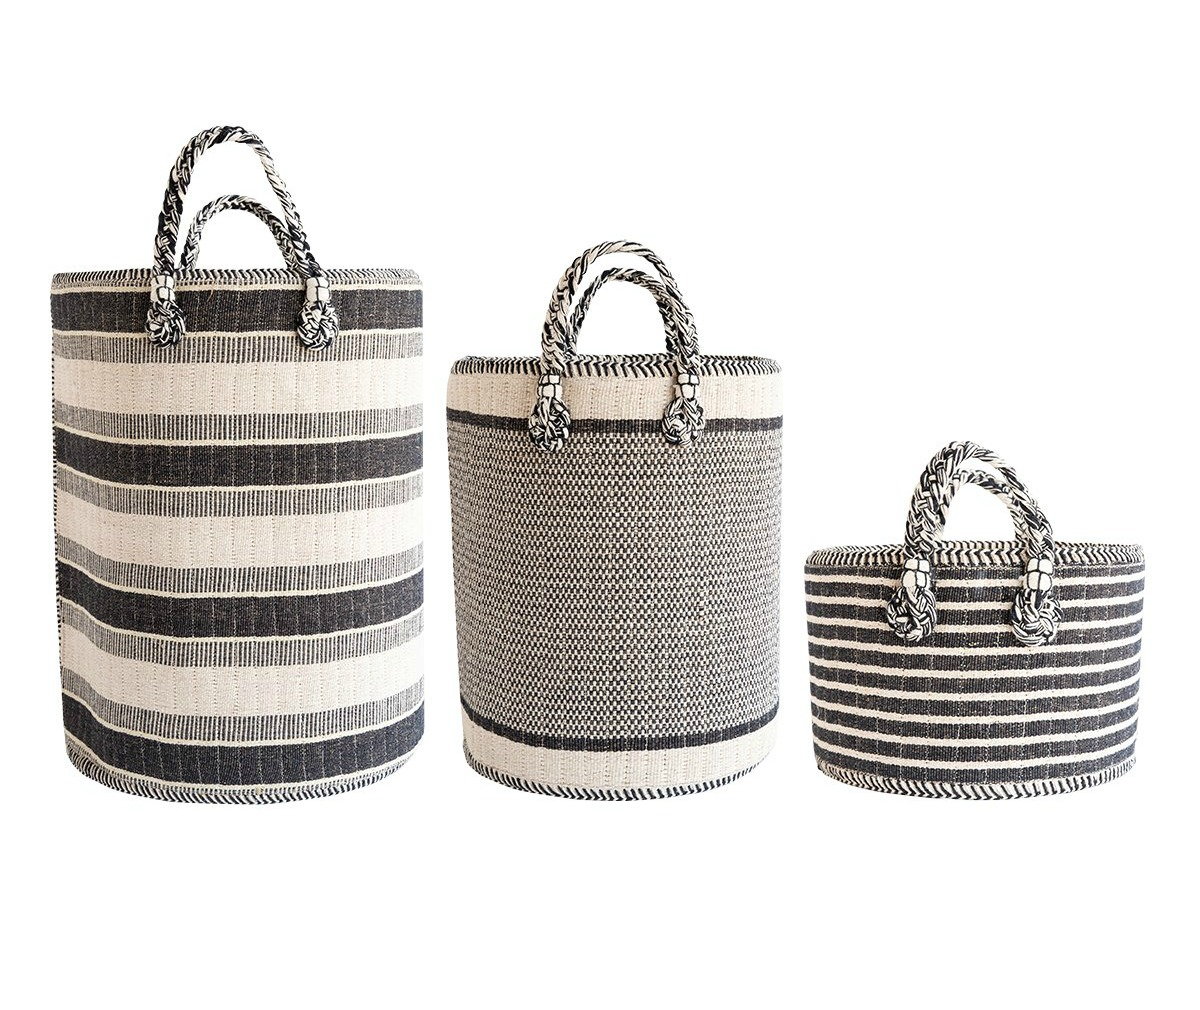 Black and white striped baskets